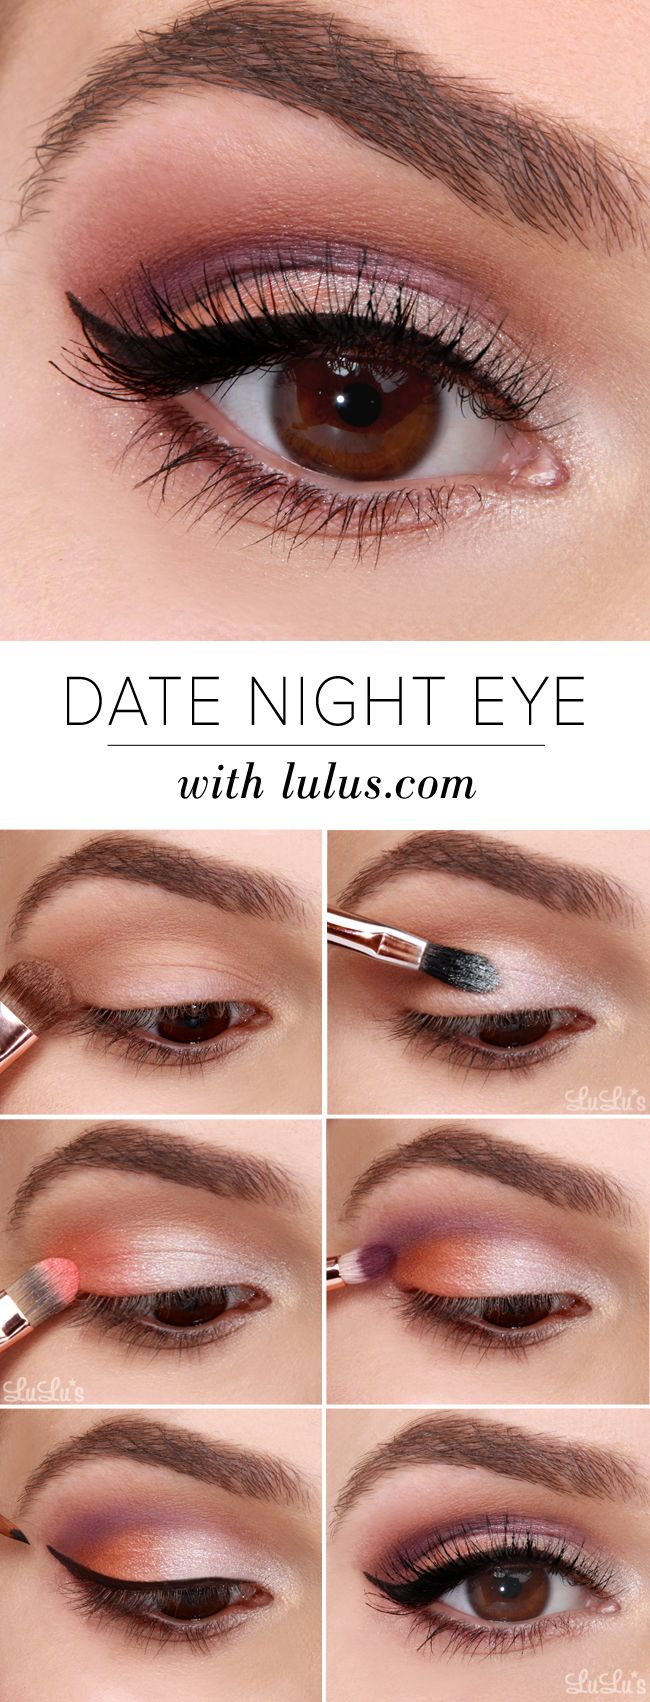 Date Night Eyeshadow Tutorial